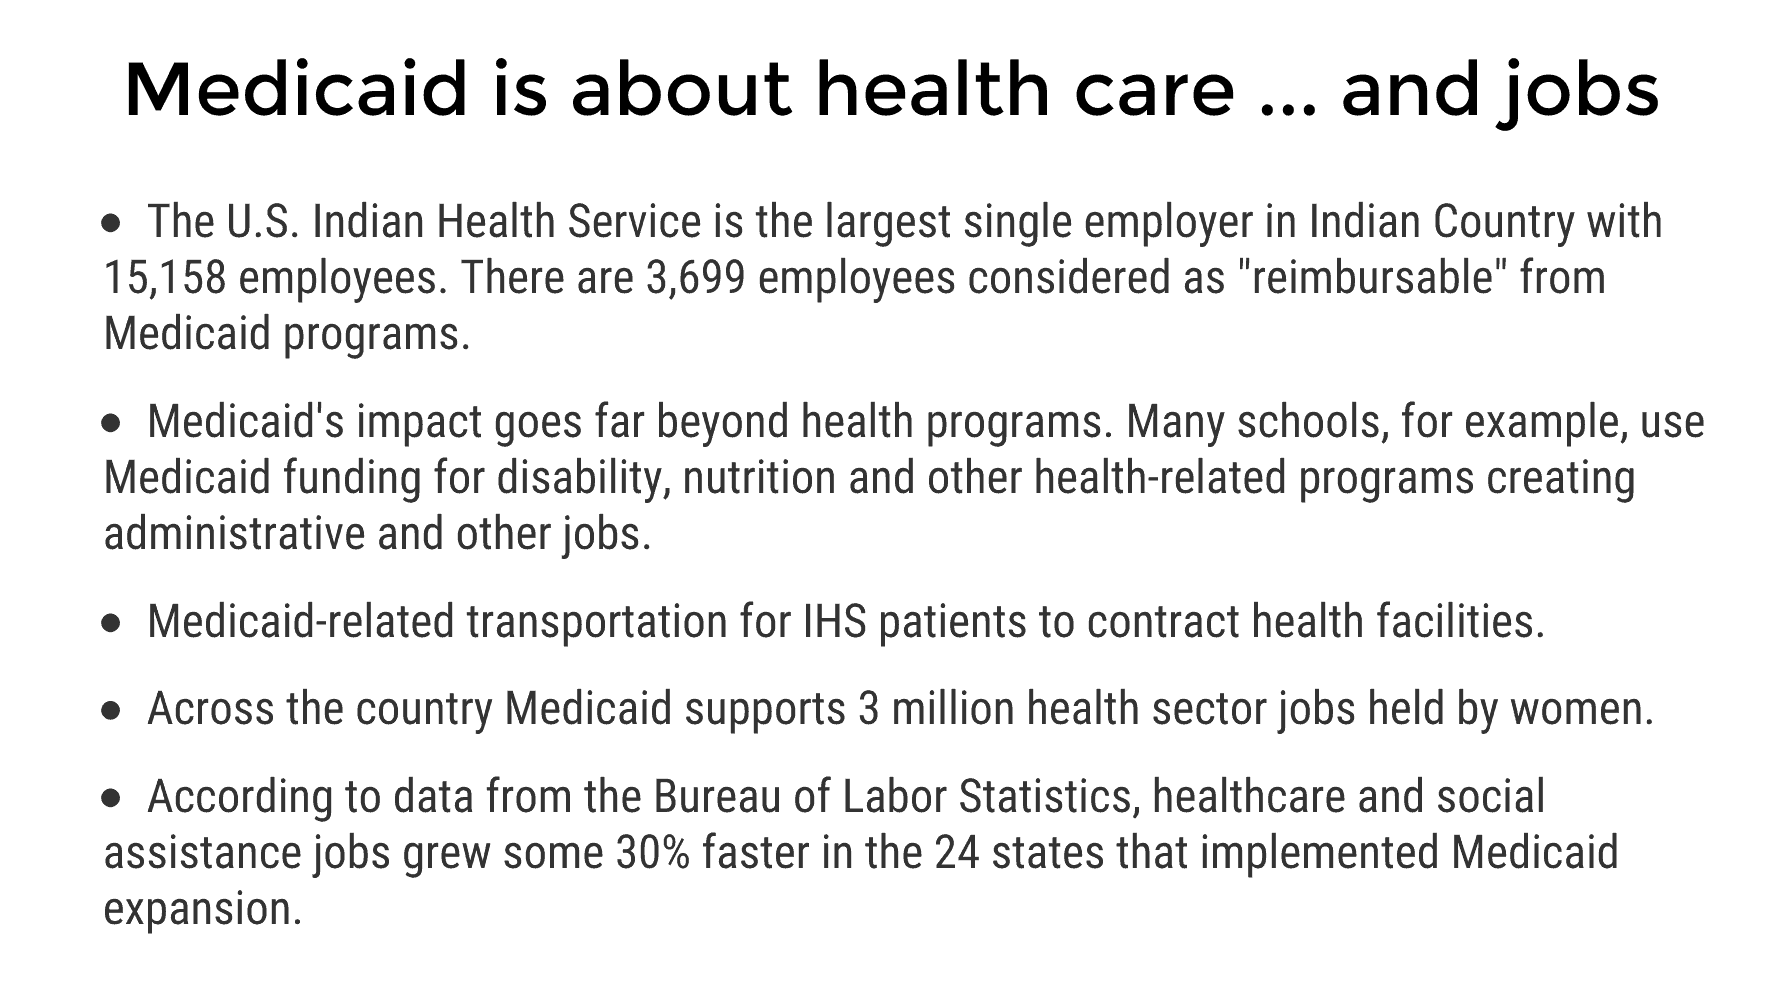 medicaid_is_about_health_care